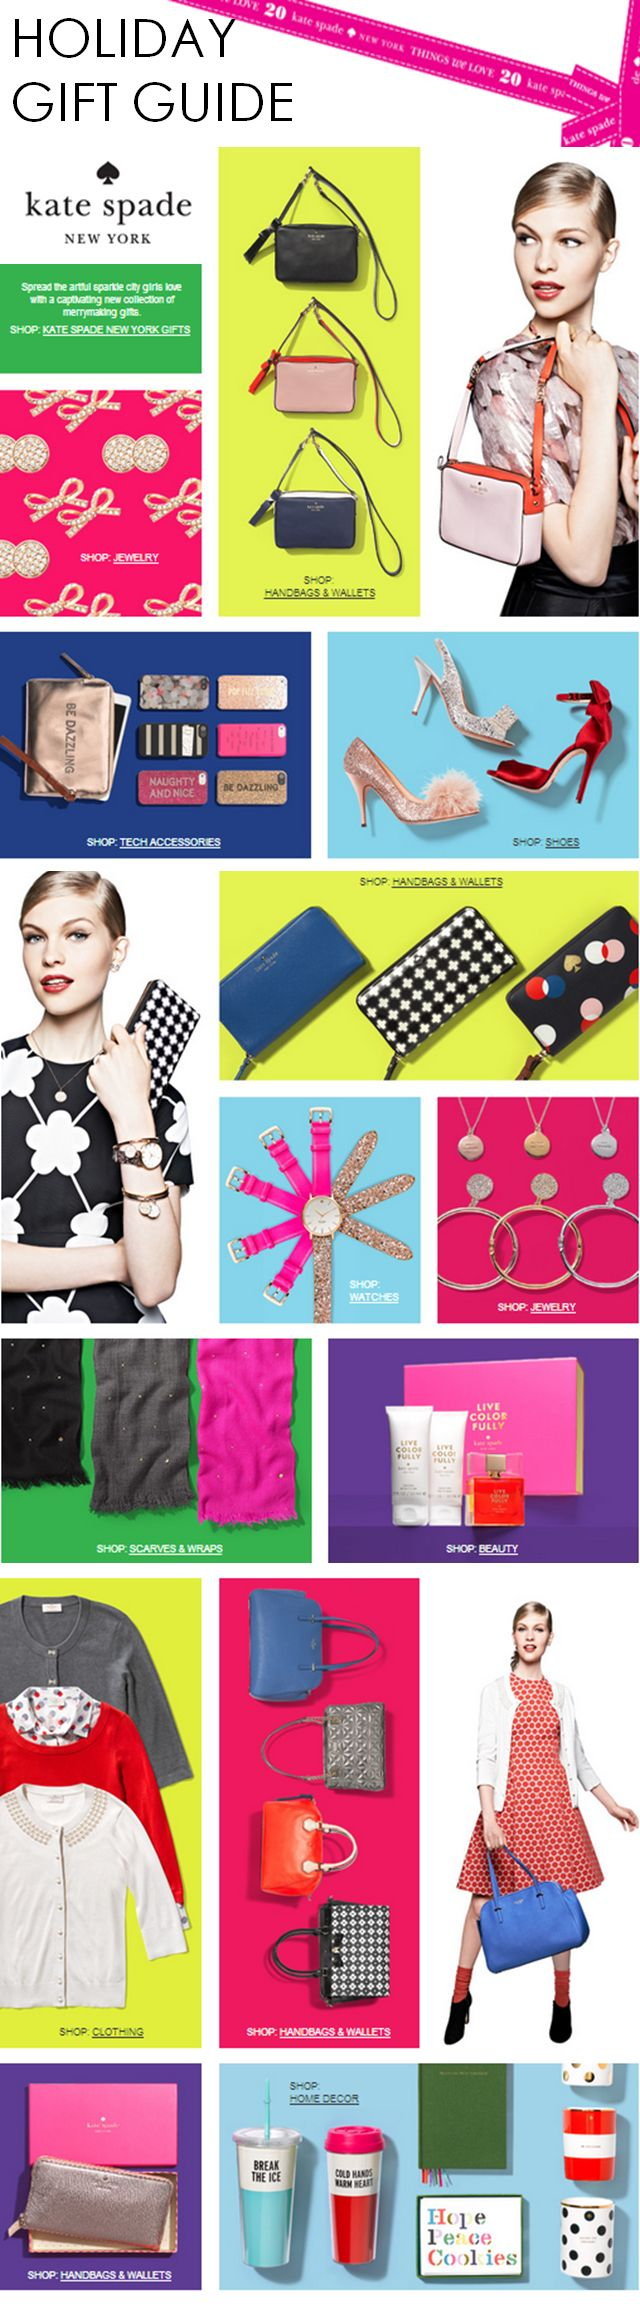 Kate Spade's Holiday Gift Guide - so many great (and affordable) gifts!